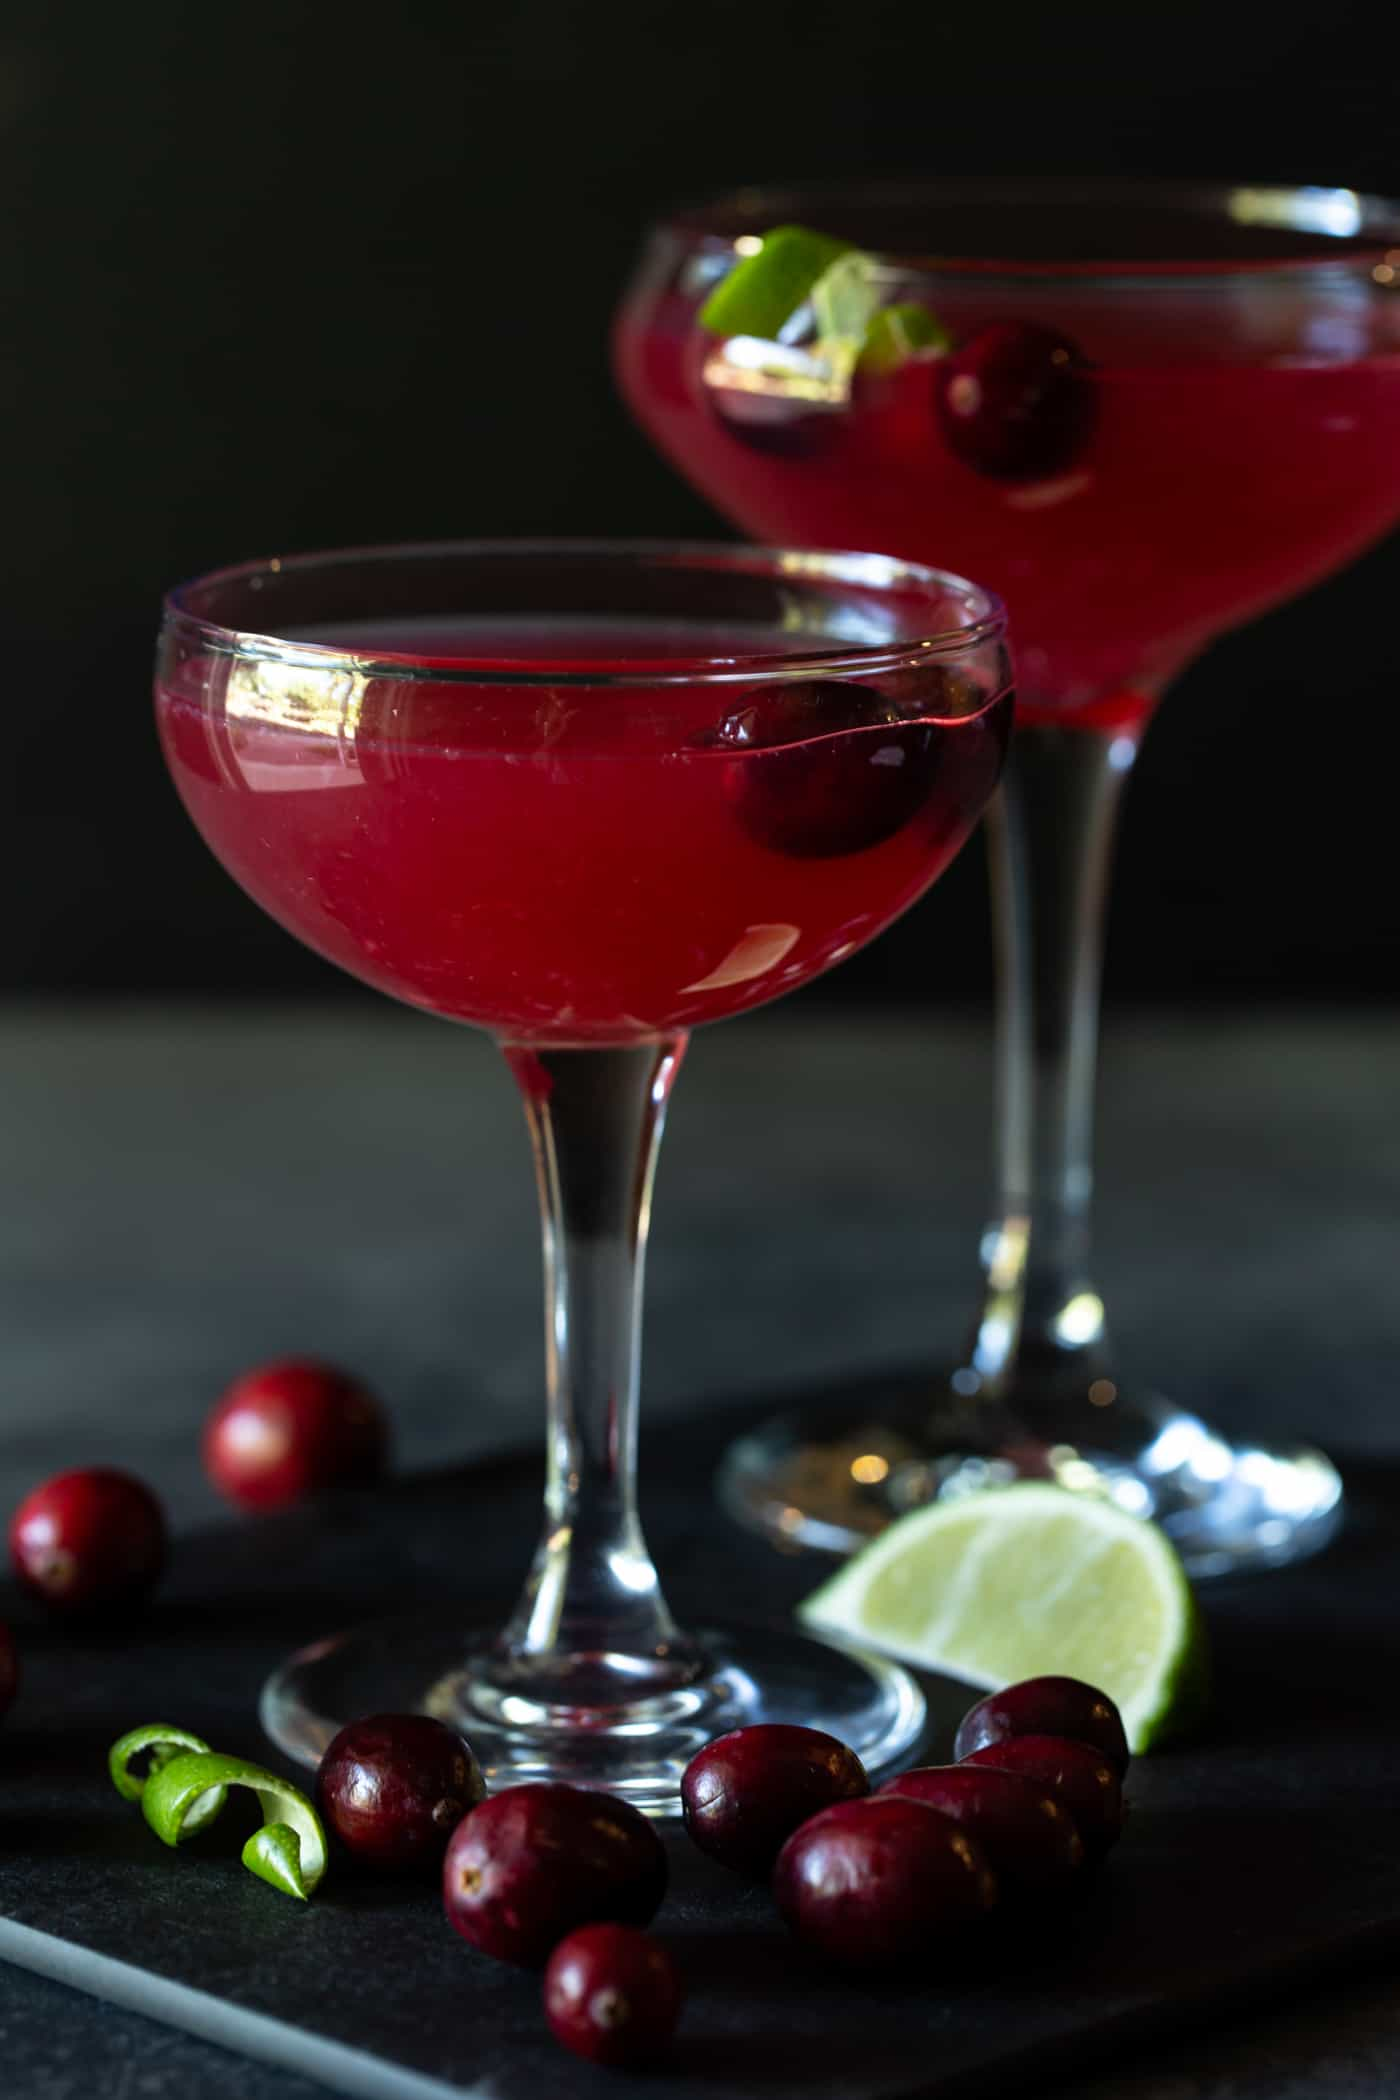 Two Cranberry Vodka Gimlets in coupe glasses garnished with lime twists and fresh cranberries.